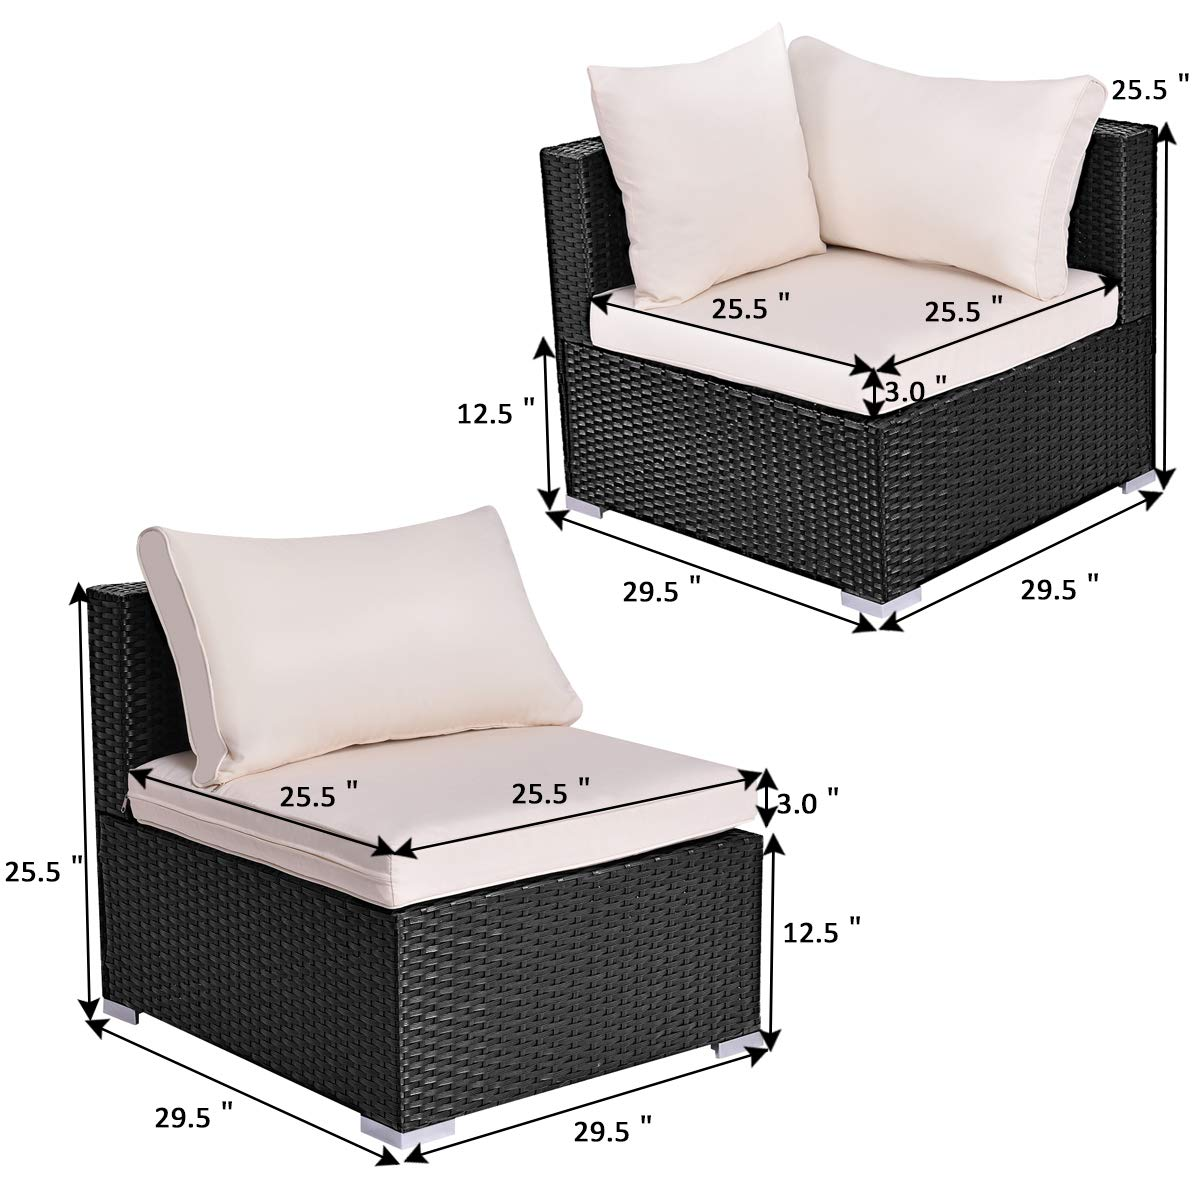 1 Corner Sofa+ 1 armless Sofa Tangkula Outdoor Wicker Furniture Set Infinitely Combination Cushion Wicker